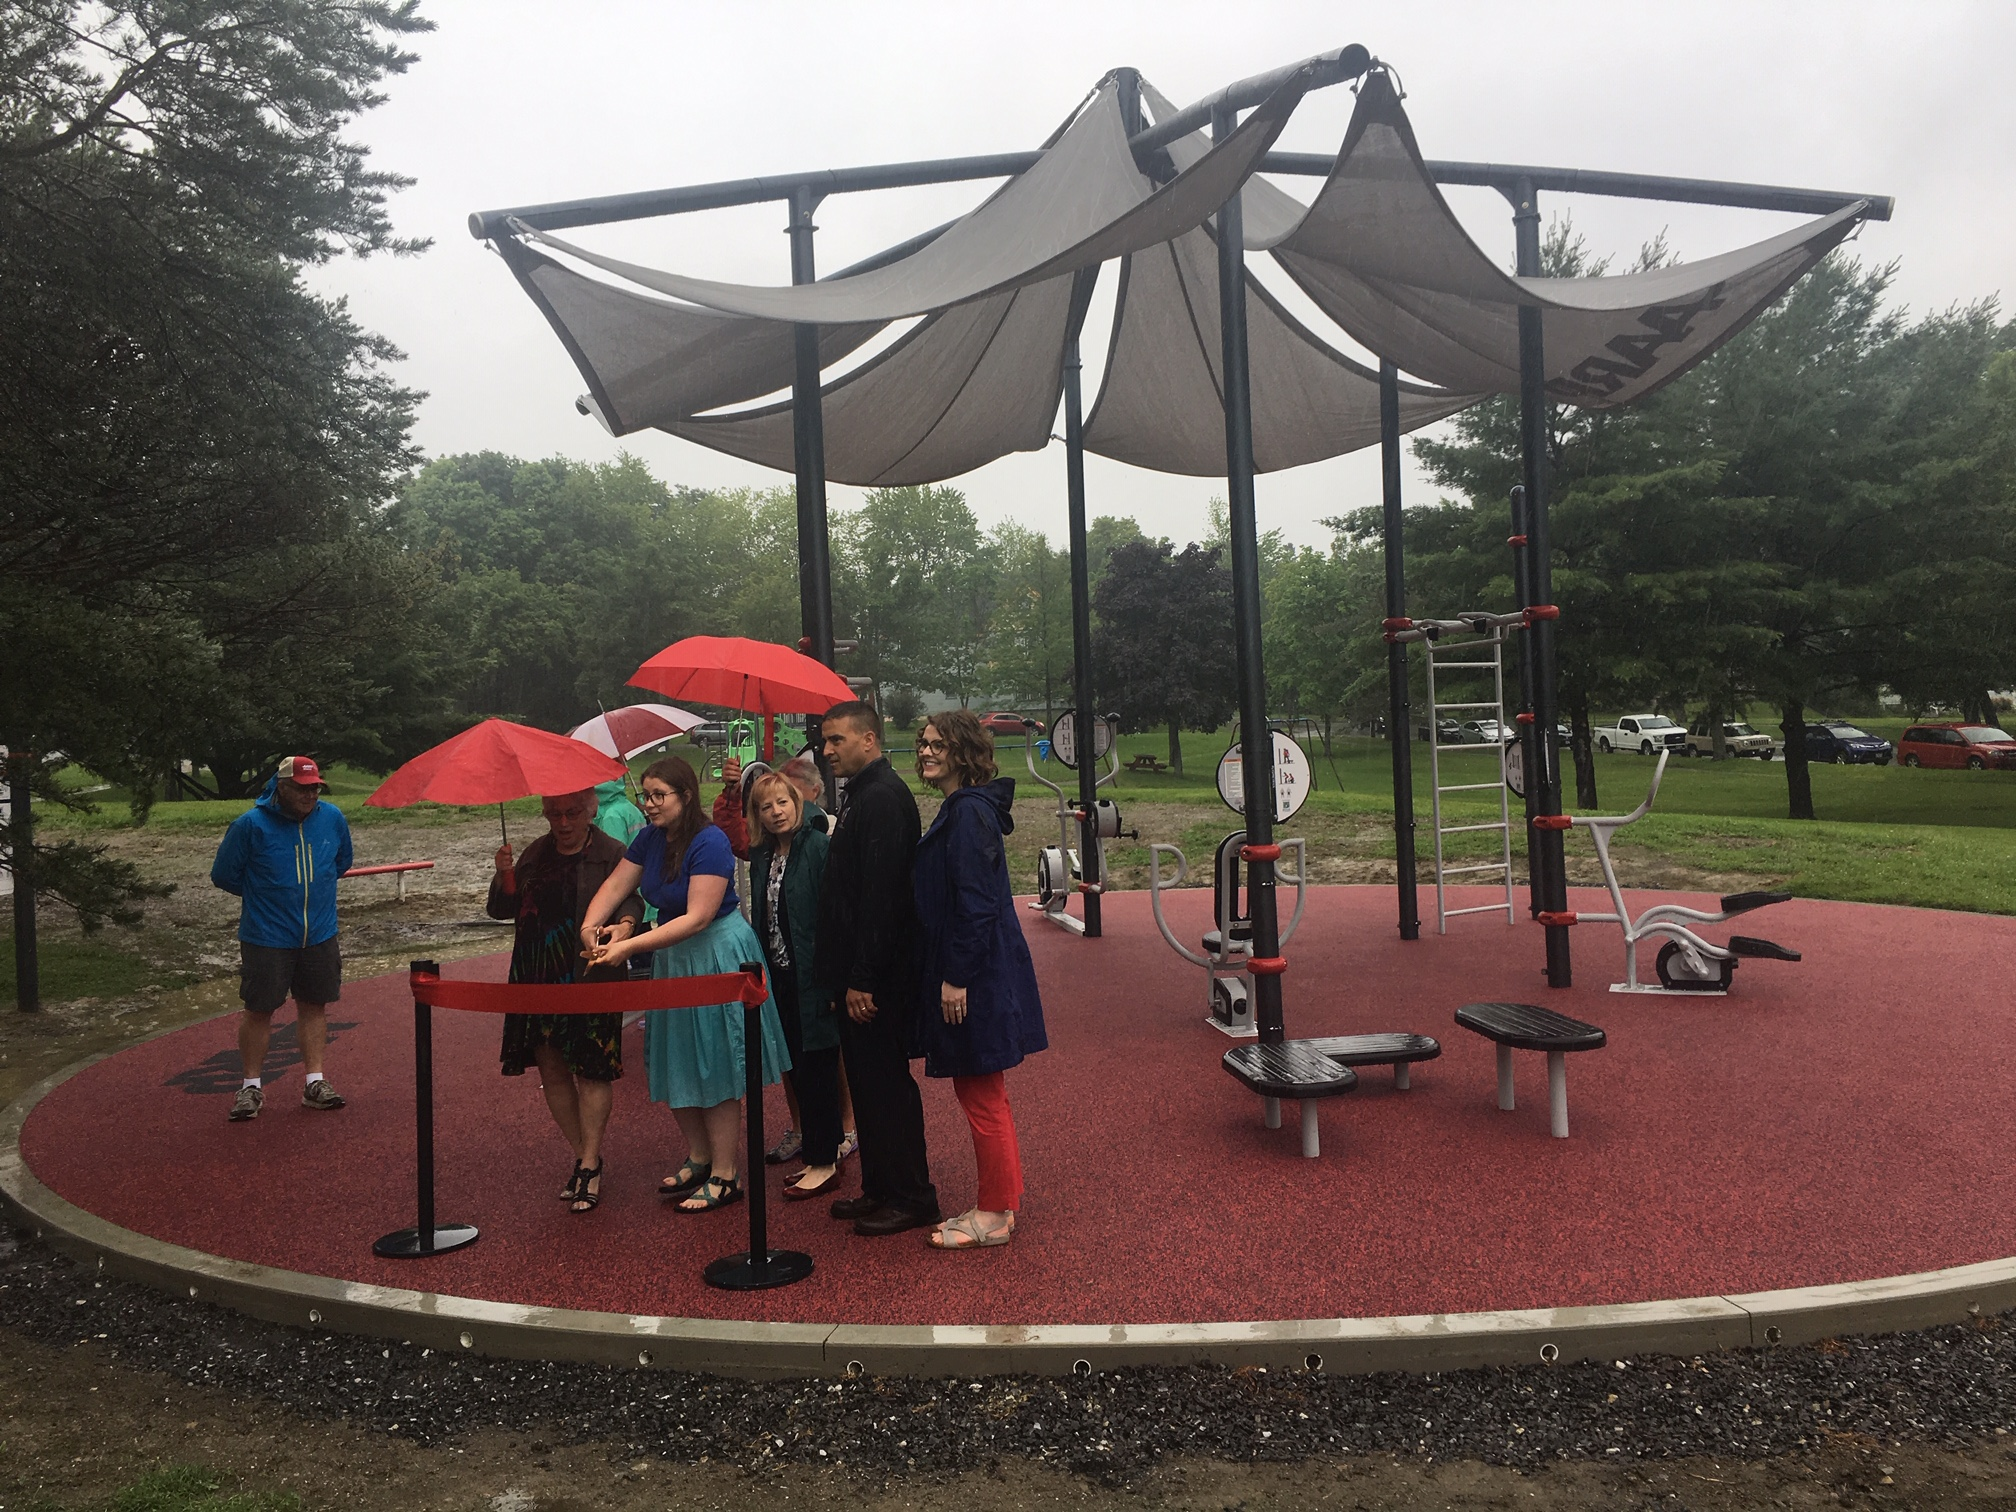 AARP Opens New Fitness Park in BANGOR to Commemorate 60th Anniversary